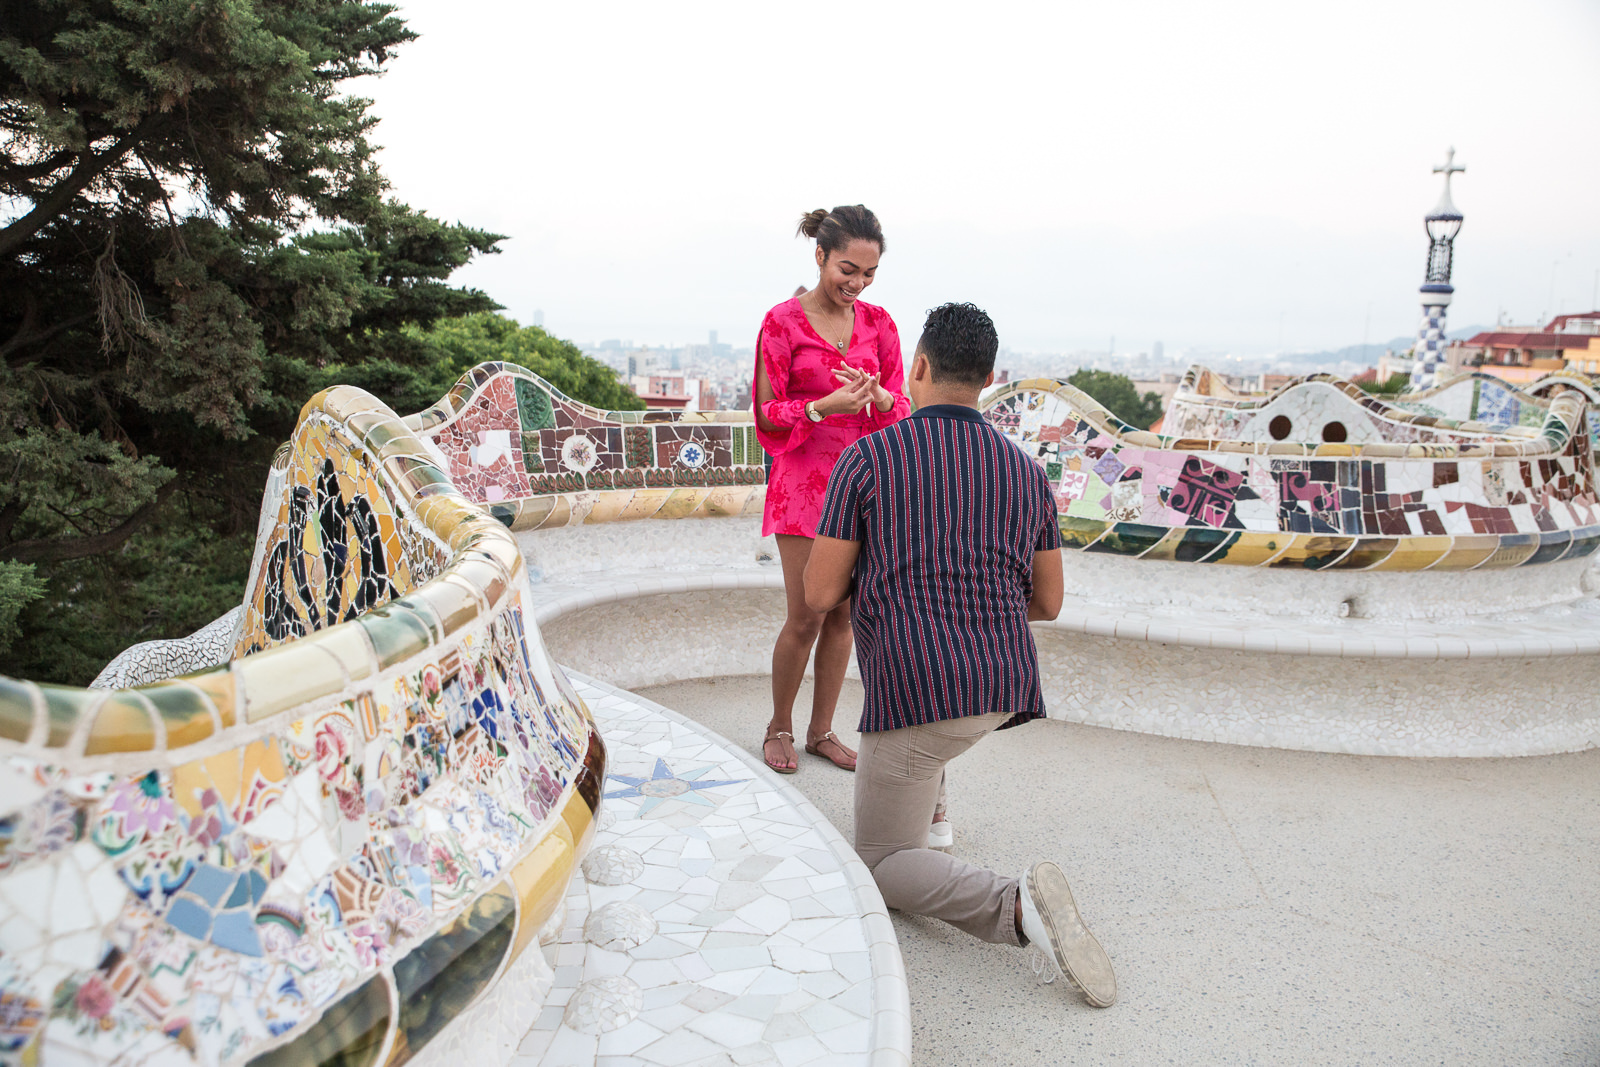 Surprise marriage proposal in Barcelona | Natalia Wisniewska Photography